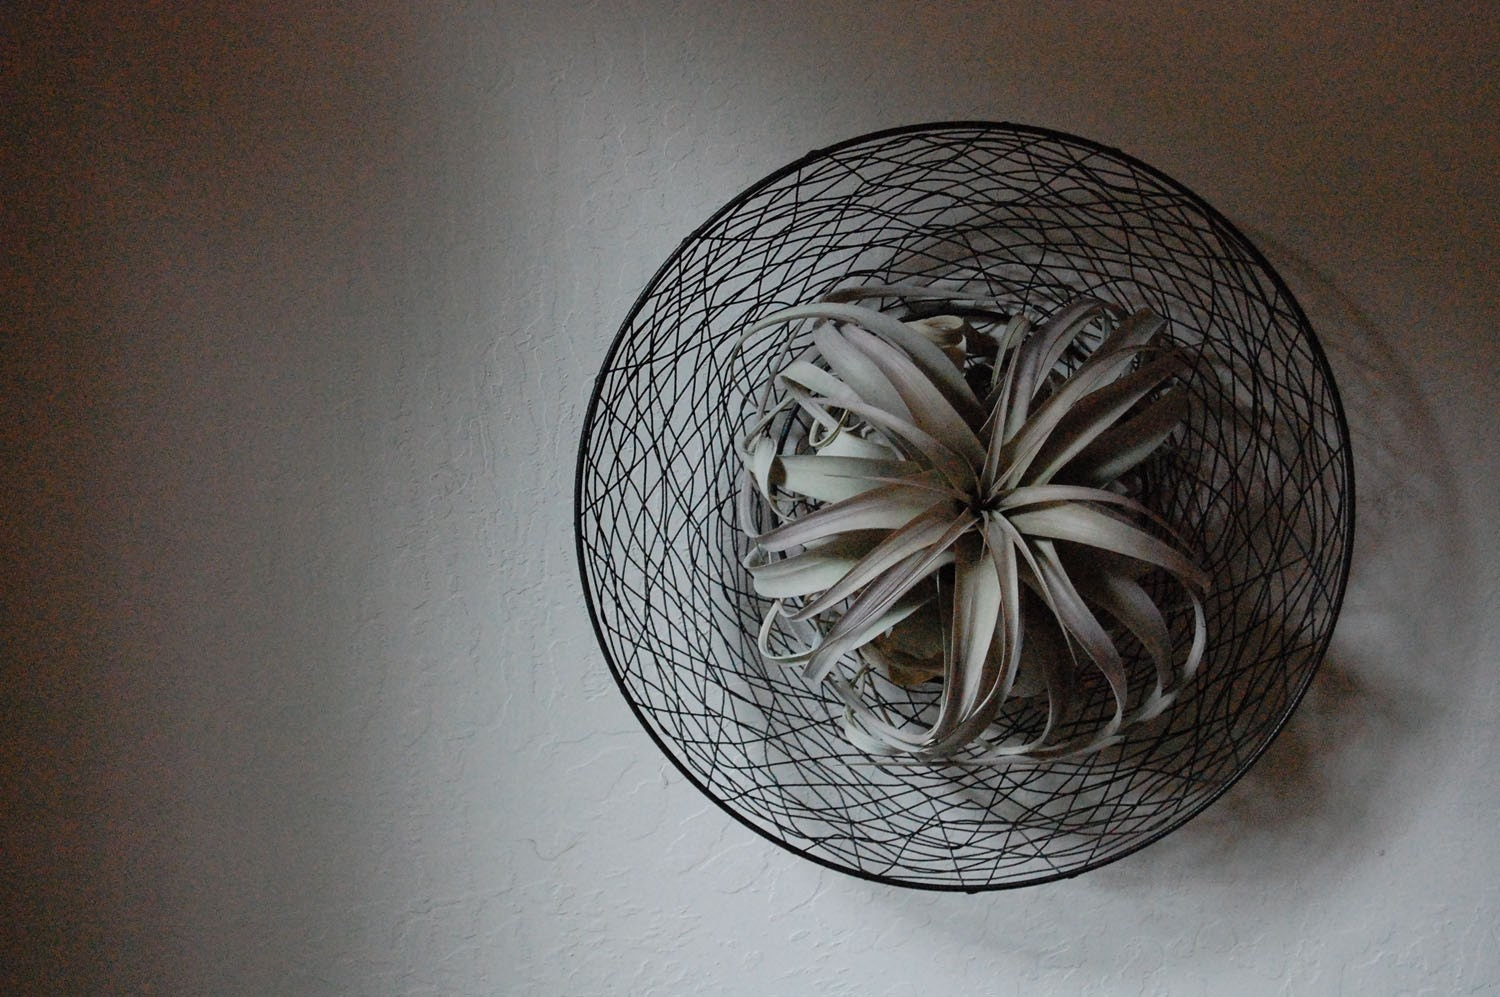 Xerographica air plant living wall art by plantology on etsy for Air plant wall art